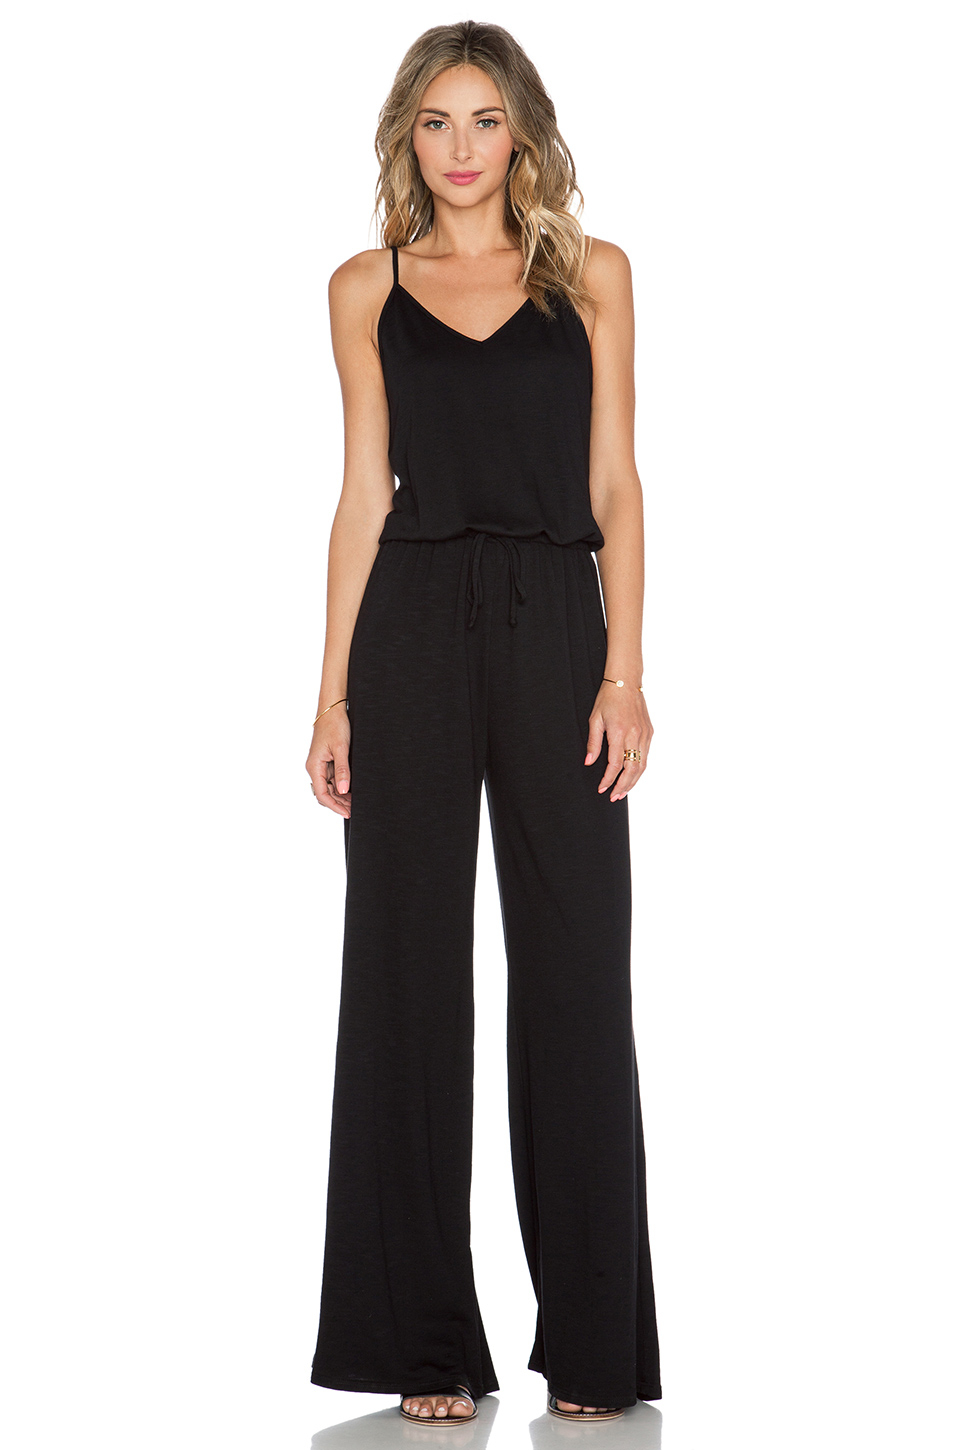 Jump start your new season wardrobe with the always chic and versatile jumpsuit. This 70s inspired one piece is an ultra-versatile day-to-night wonder. Dress up with stiletto heels and a clutch bag, or go casual and rock with sliders and a faux leather jacket for on-trend transitional dressing.